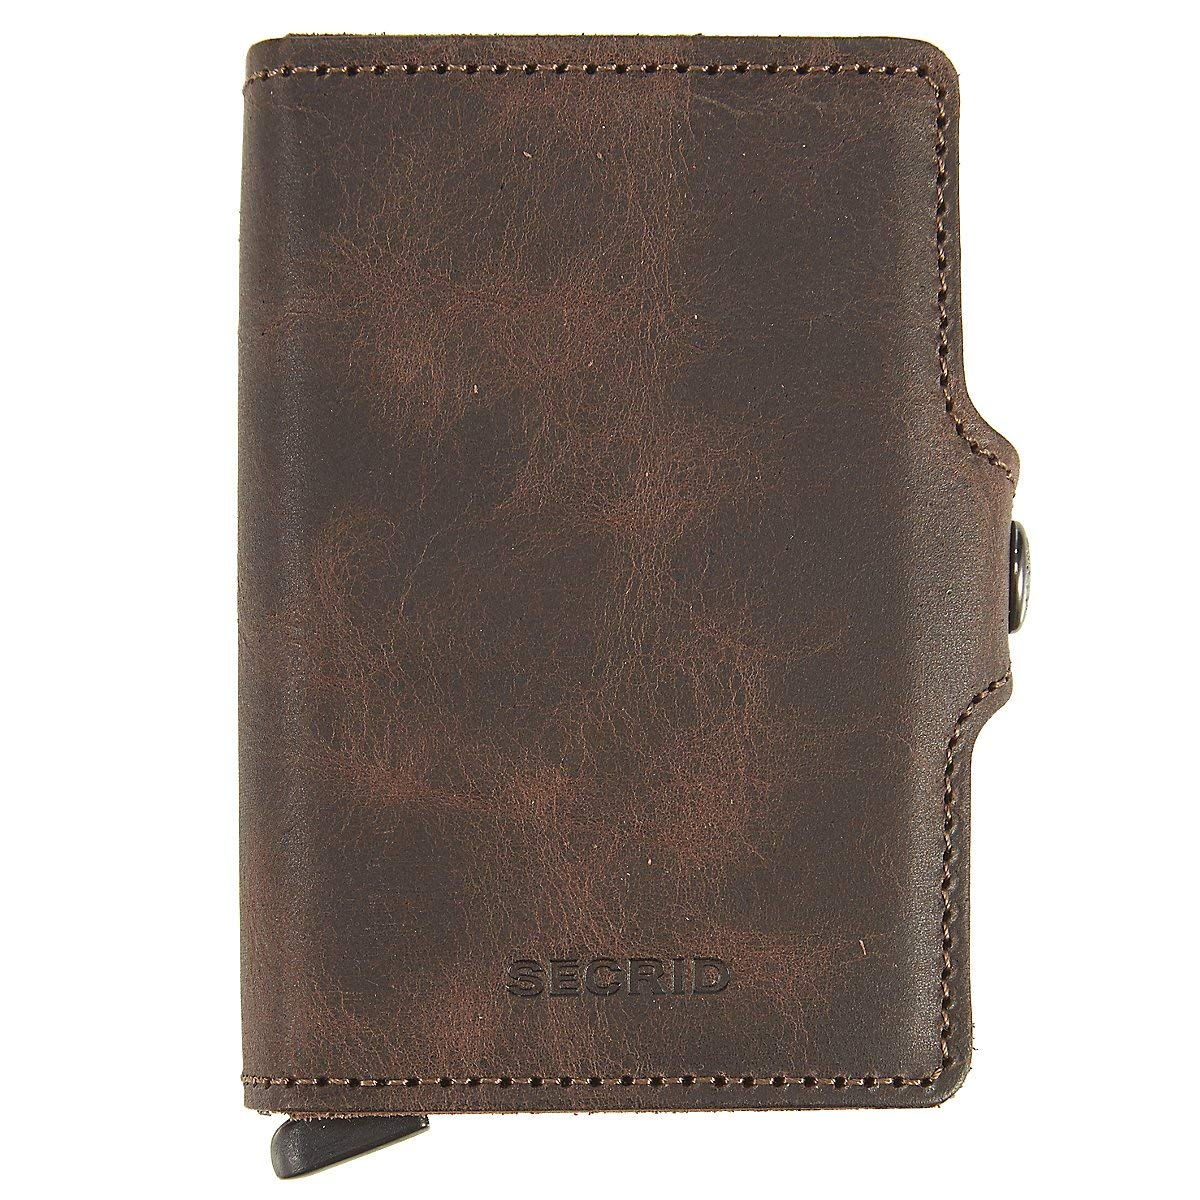 Secrid Twin Wallet, Vintage Chocolate, Genuine Leather with RFID Protecton, Holds up to 16 Cards